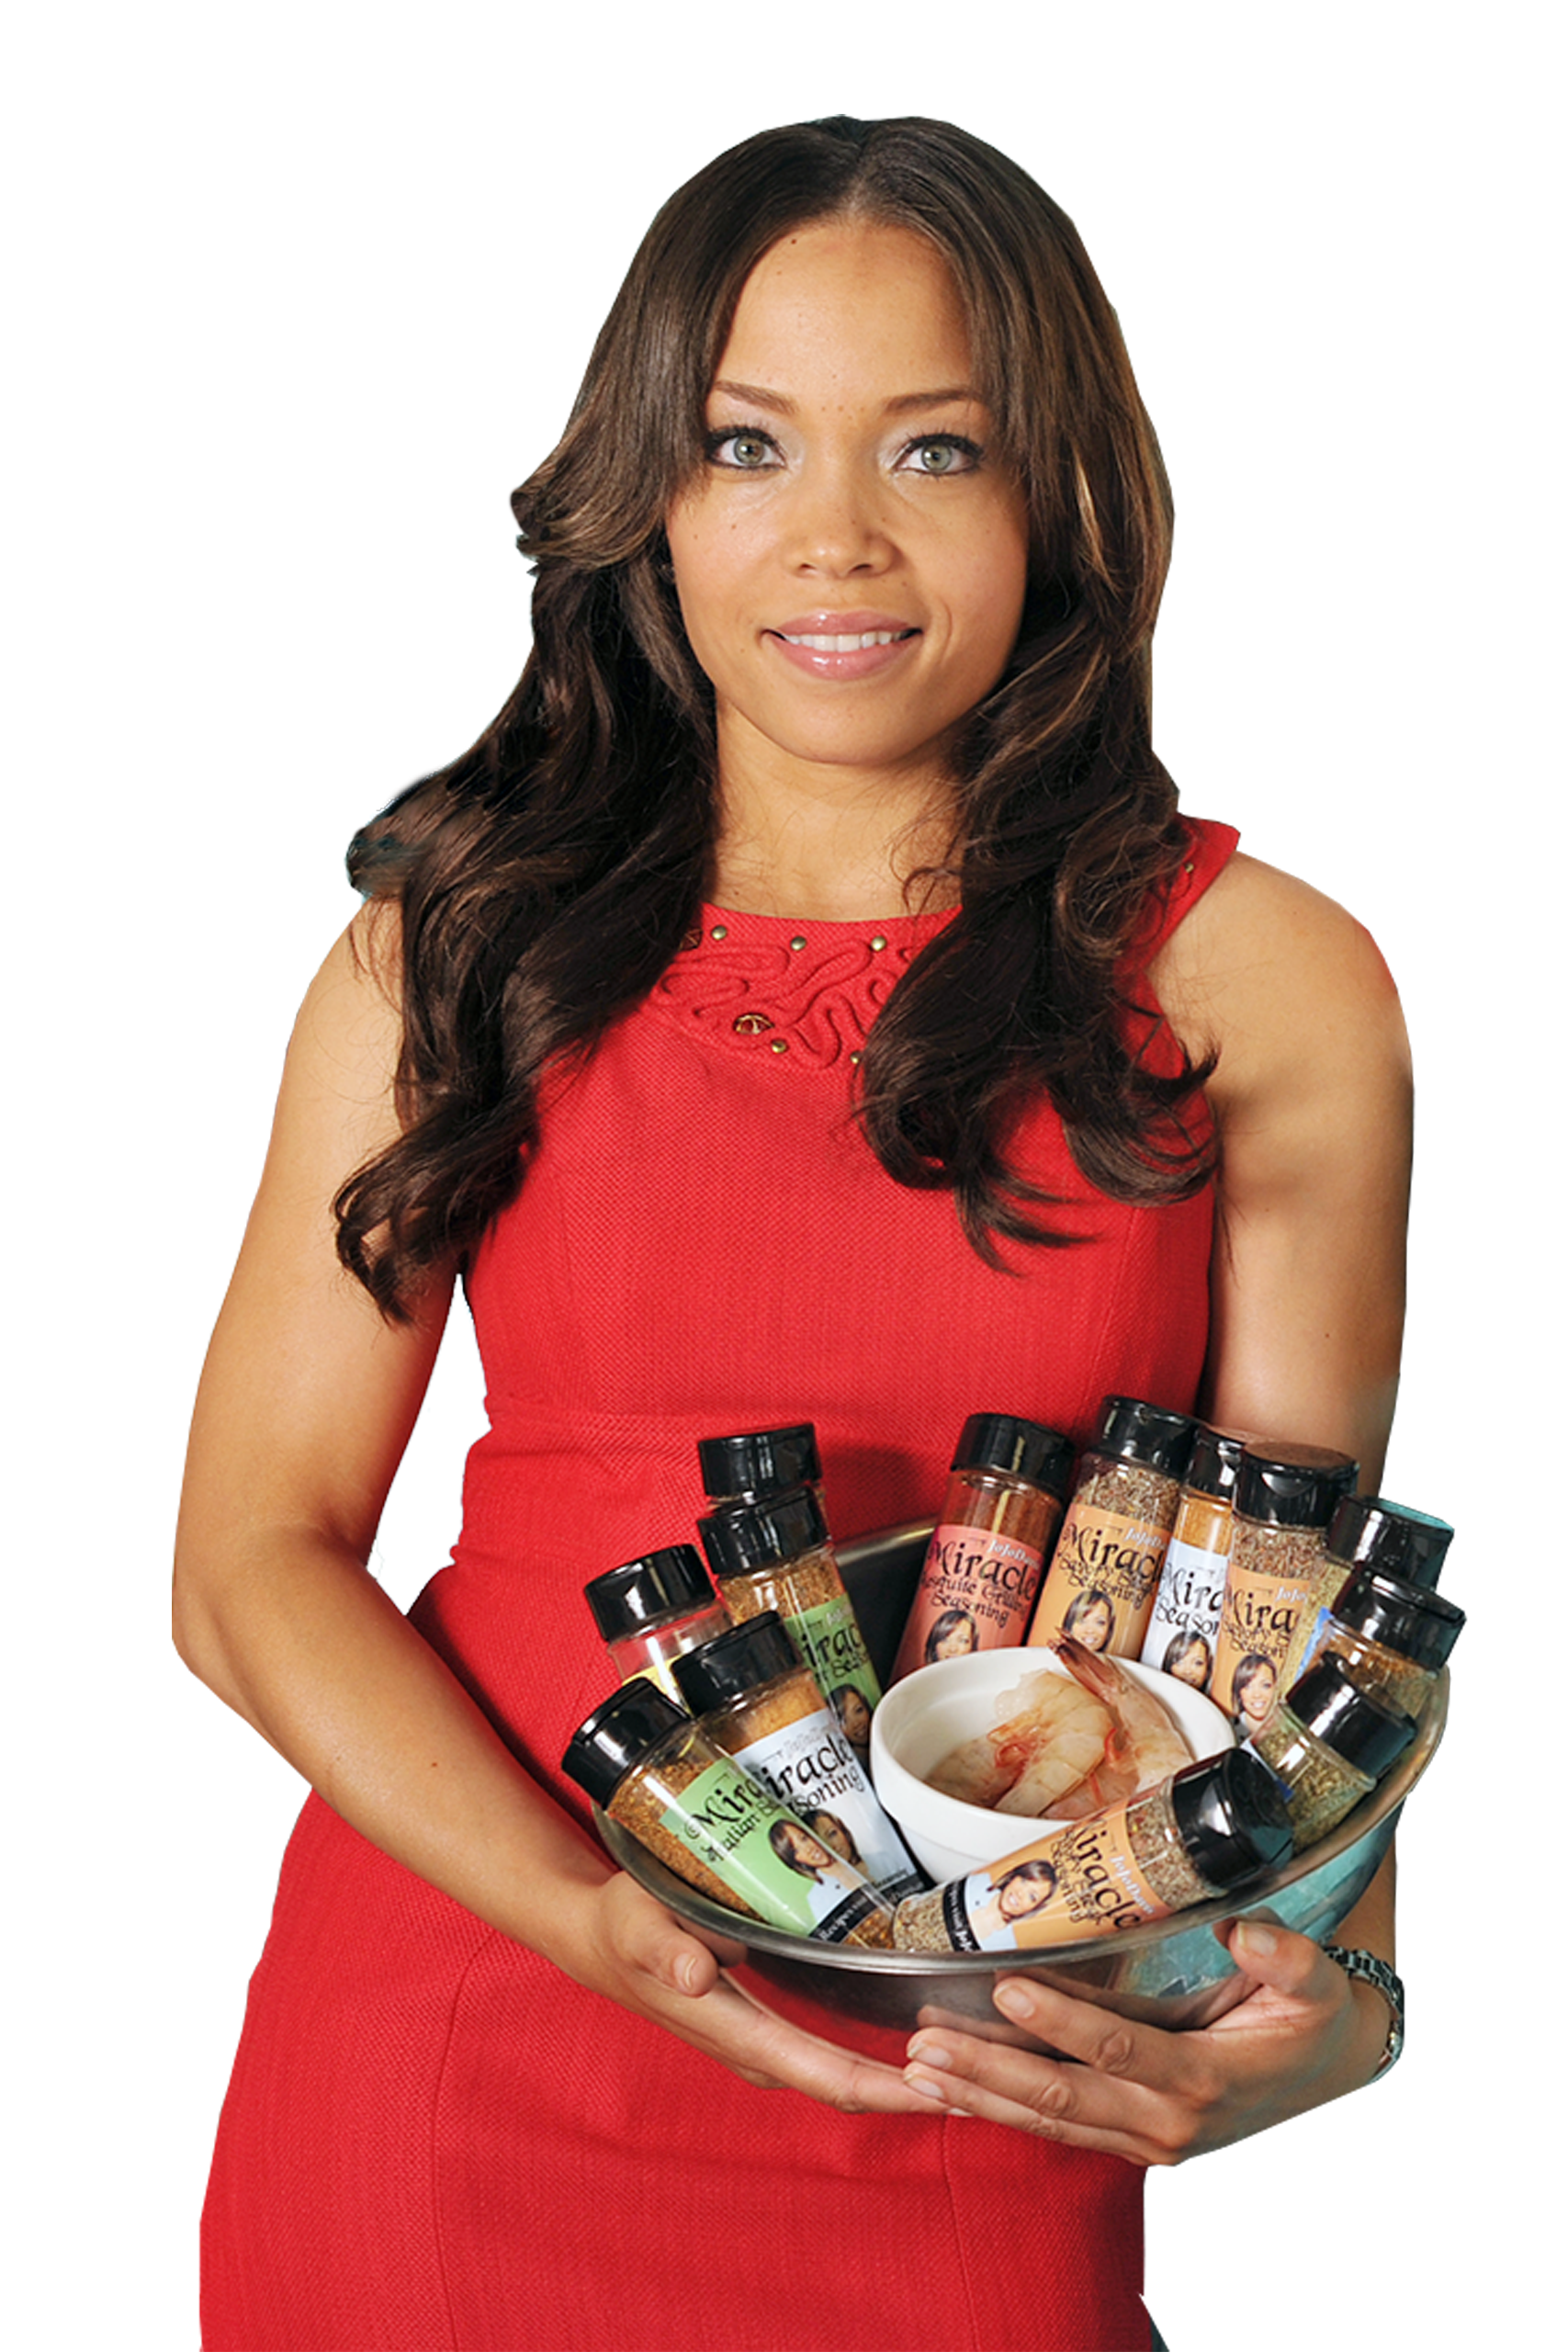 Celebrity Chef Joanna Davis Talks About Pivoting Her Business During COVID19, and Her Work with Celebrity Clients including Tyler Perry & More.